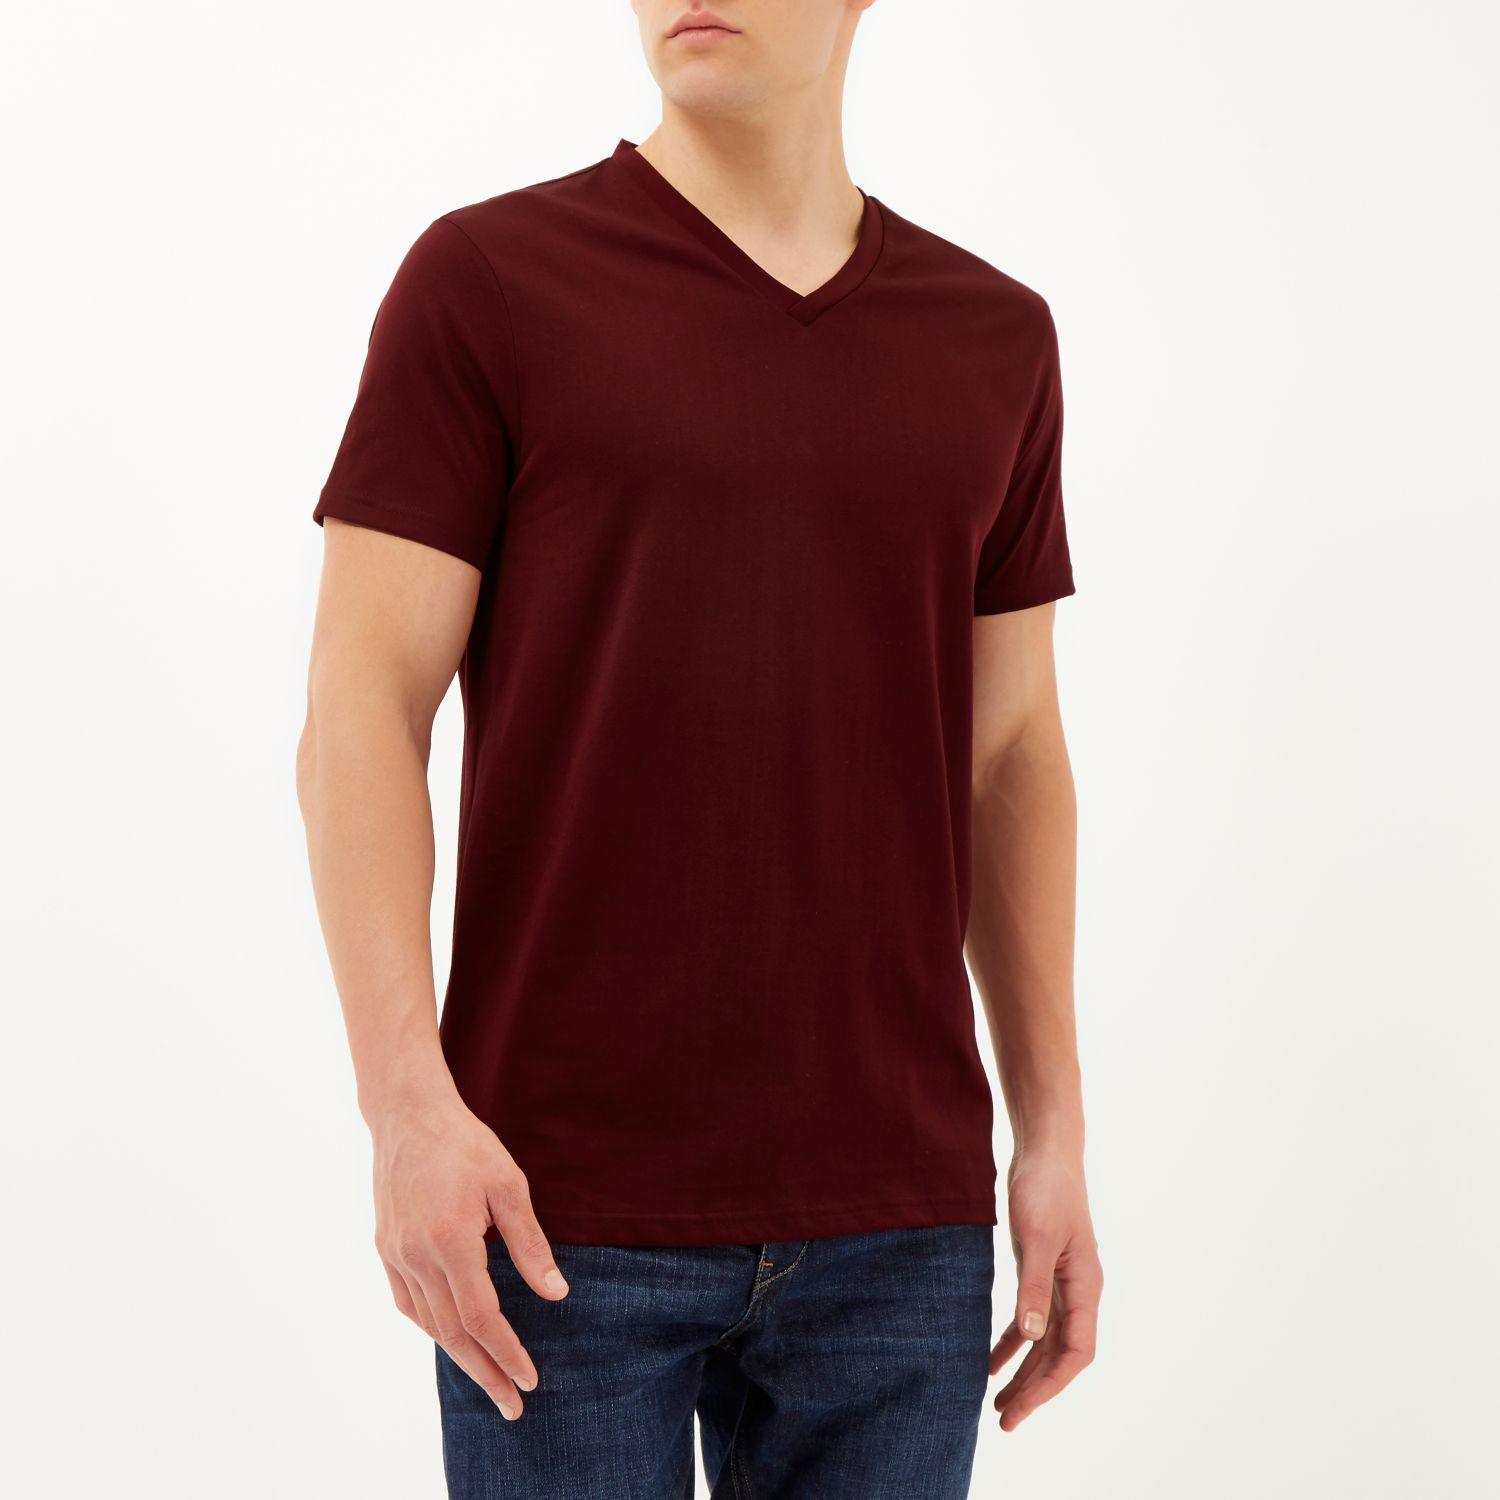 a5d888bae9 River Island Dark Red Premium V-neck T-shirt in Red for Men - Lyst